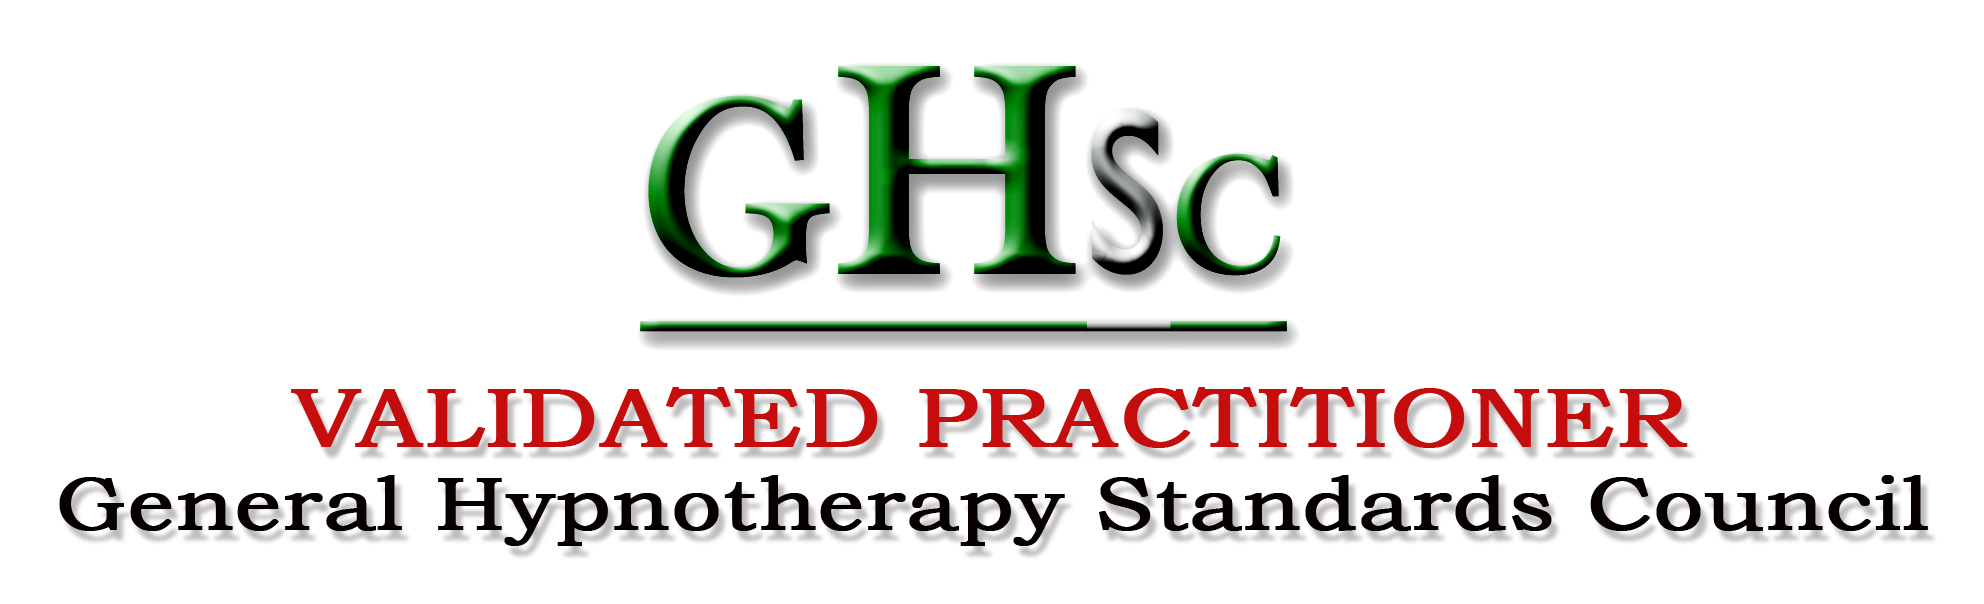 GHR Validated Practitioner